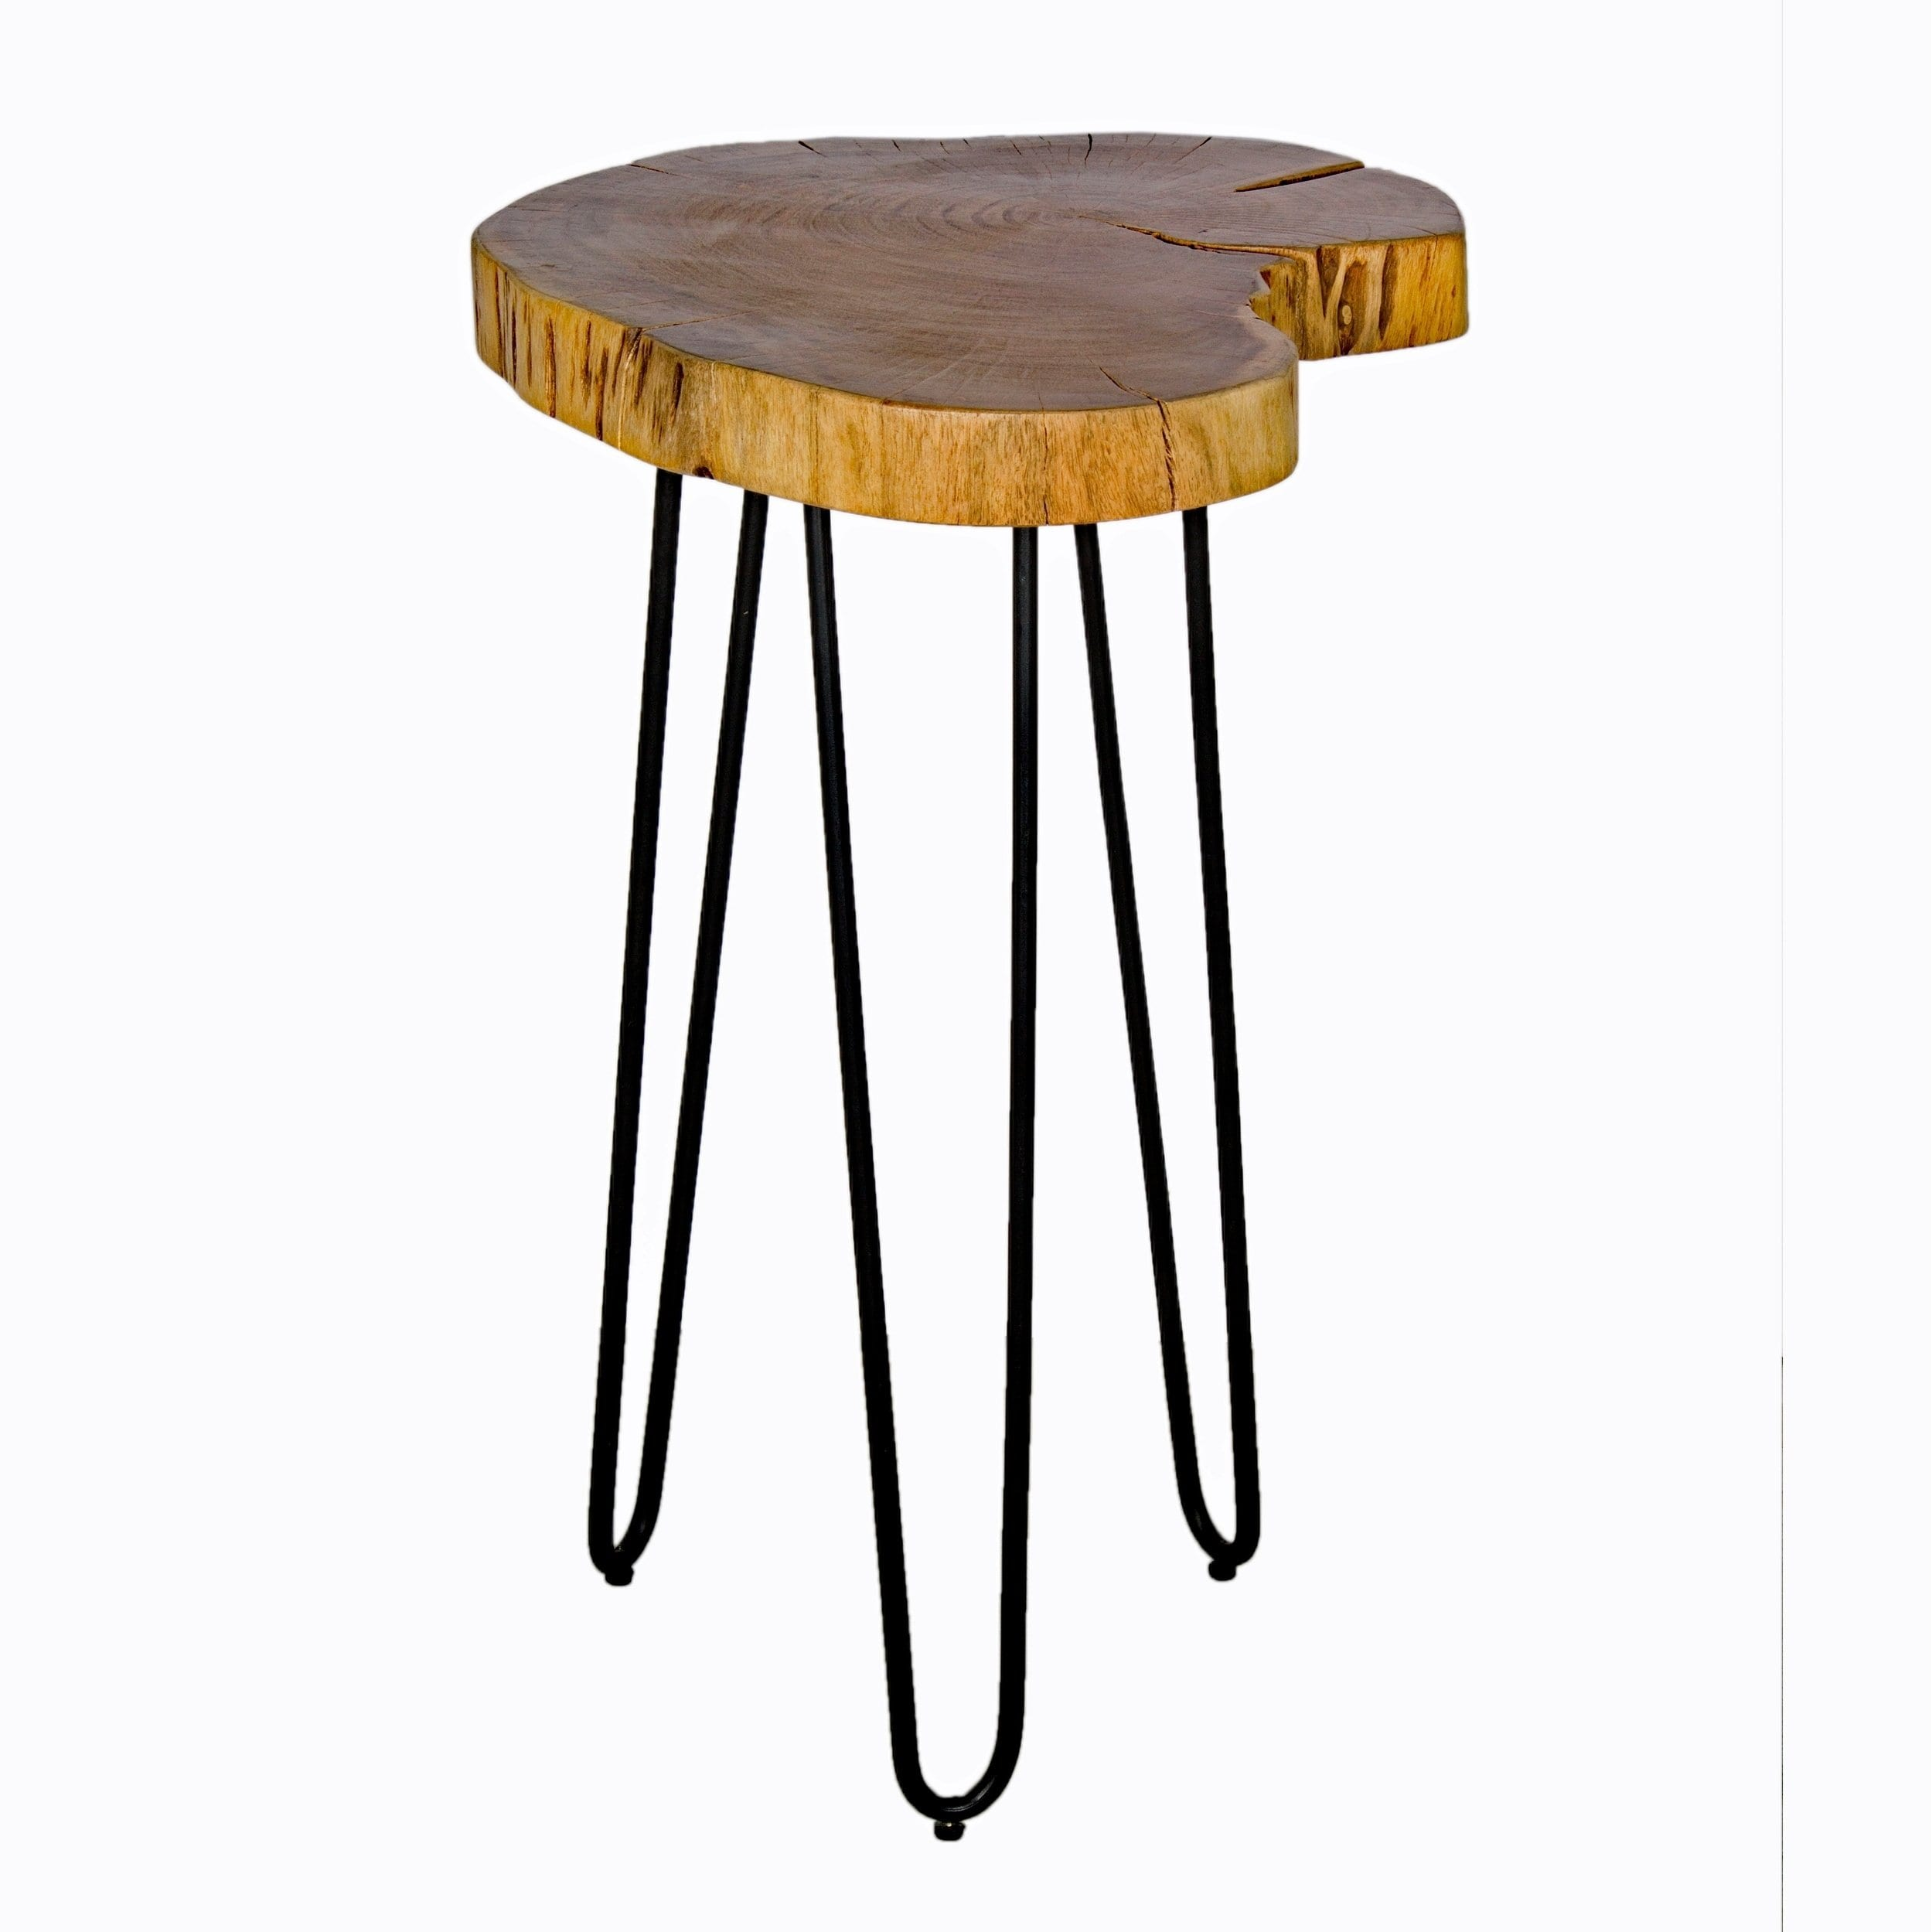 hairpin natural live edge wood metal round end table with room essentials accent free shipping today ashley furniture lift coffee ethan allen ballan retro kitchen gold legs